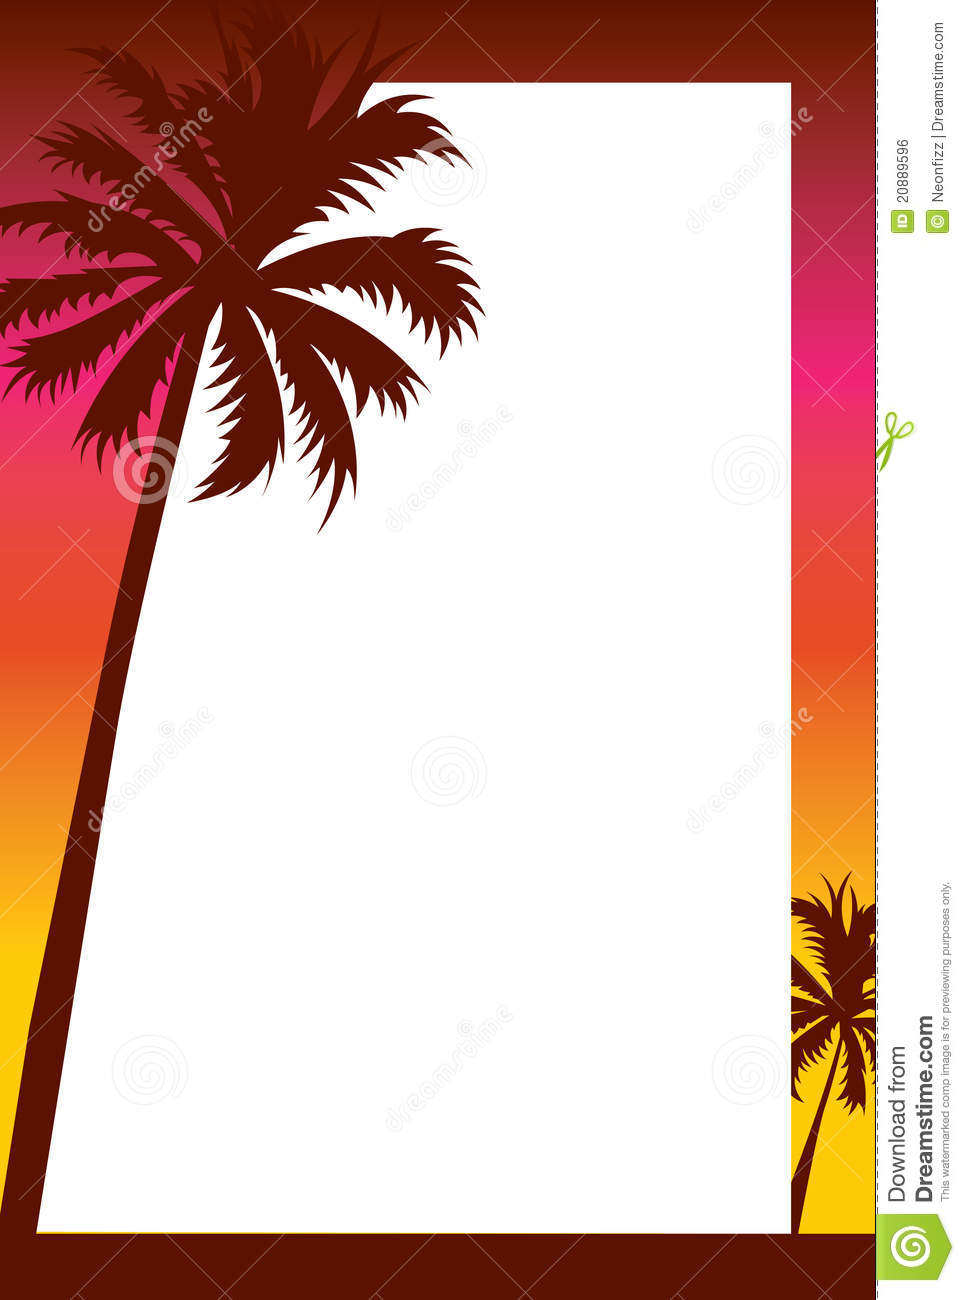 Palm Tree Beach Sunset | Clipart Panda - Free Clipart Images